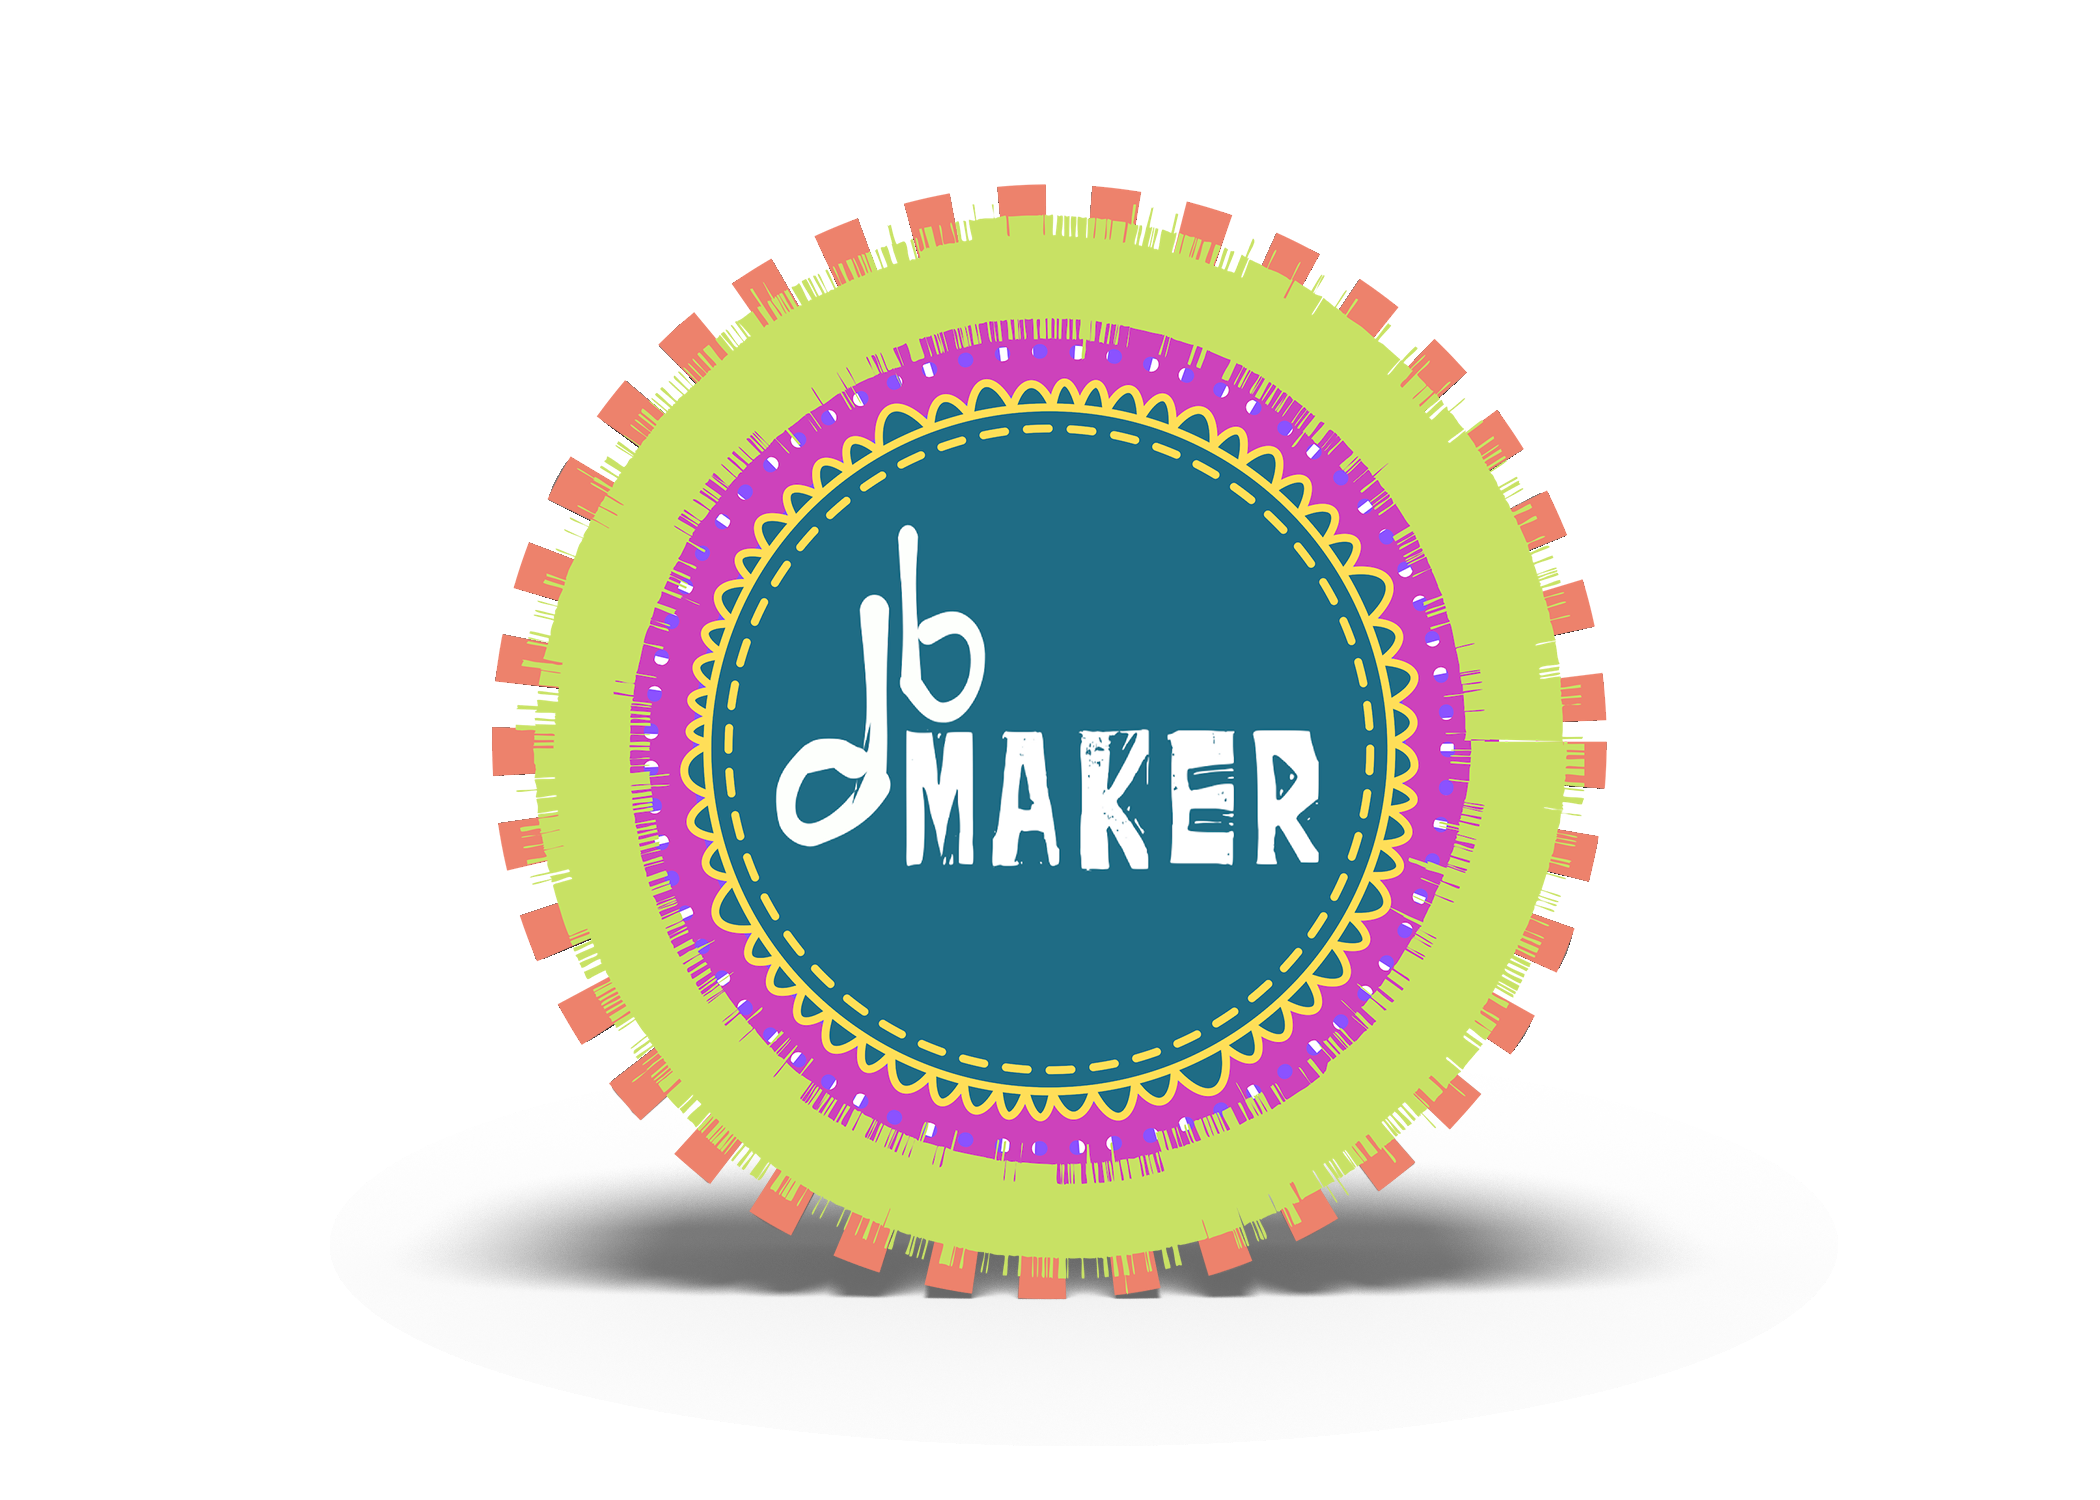 DB Maker School